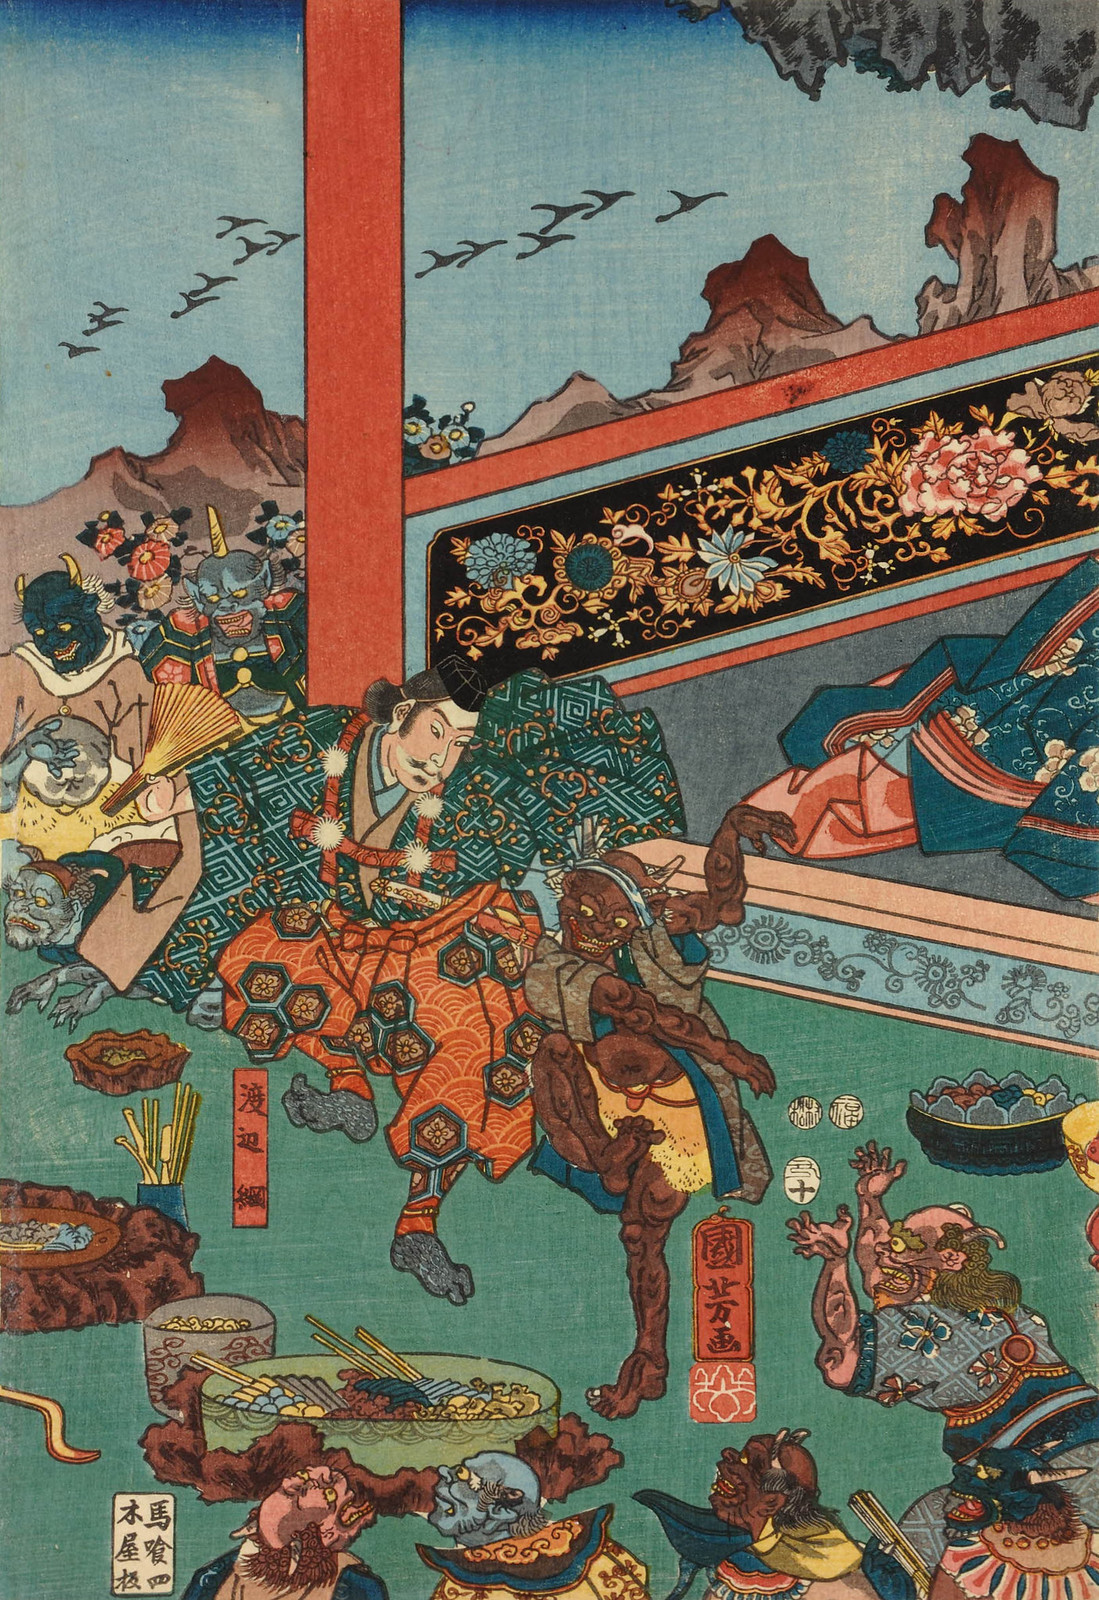 Utagawa Kuniyoshi - Raiko and his retainers entertaining the Shuten-doji and his demons with sake and dancing, 1853 (middle panel)